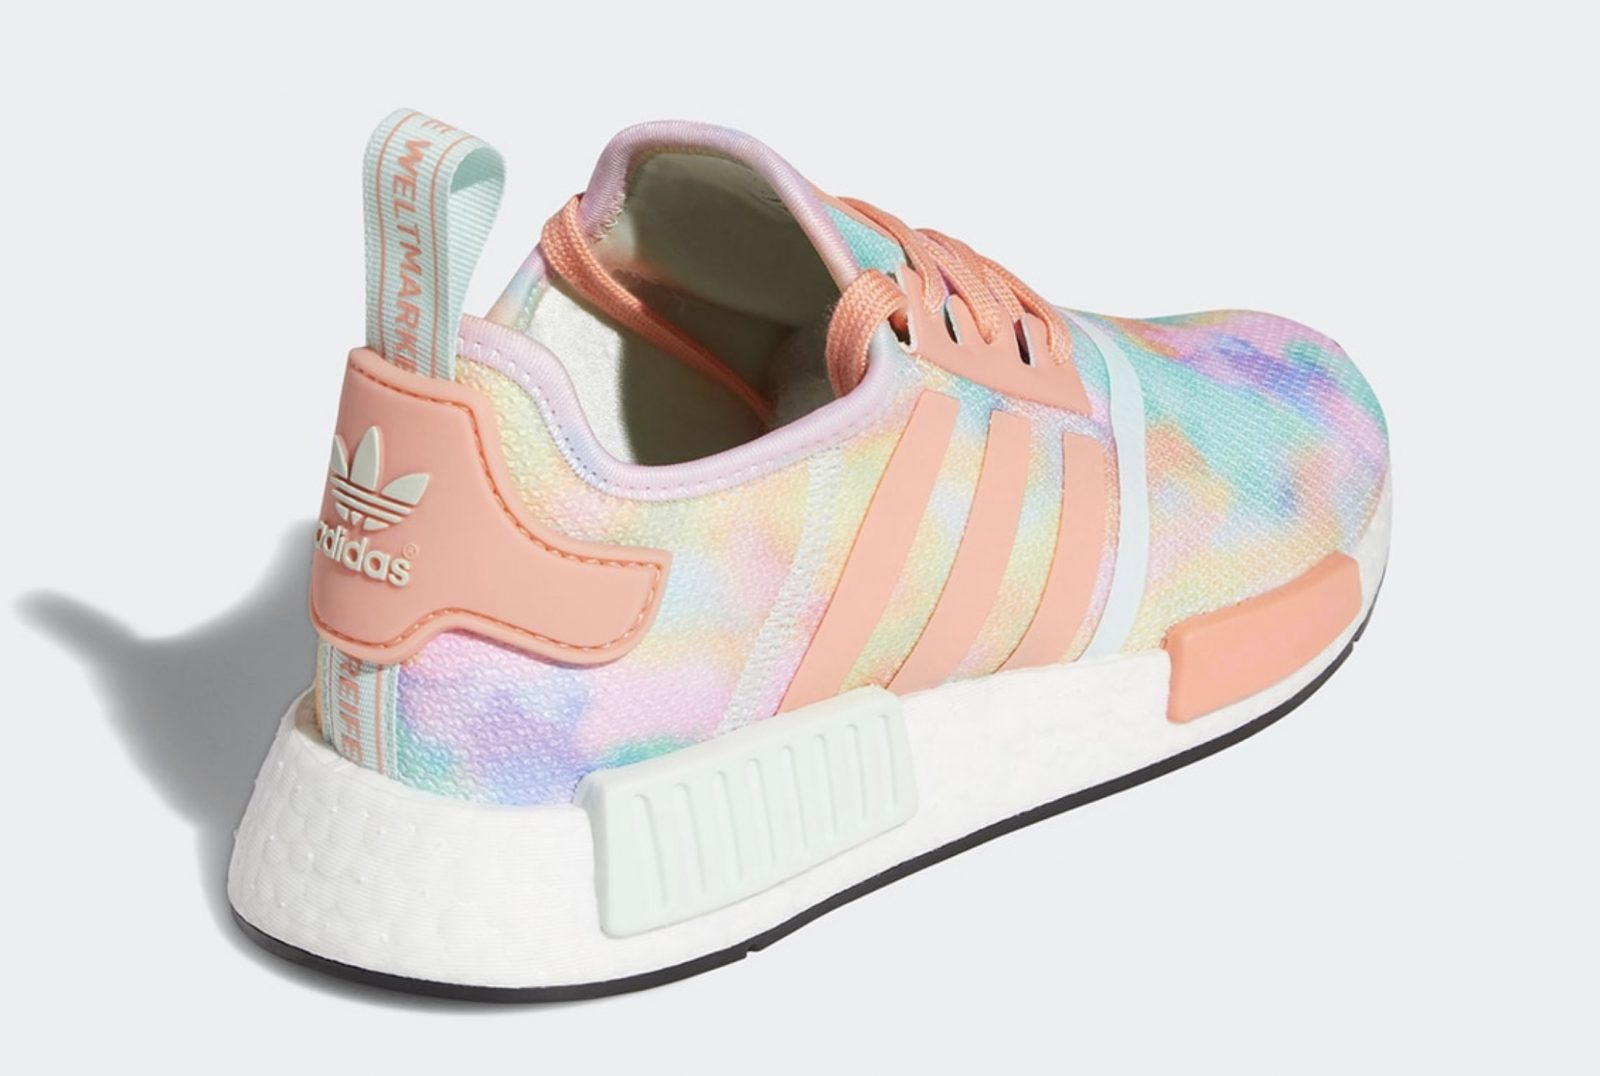 Get Colourful In The Tie-Dyed Upcoming adidas NMD R1 'Easter' heel